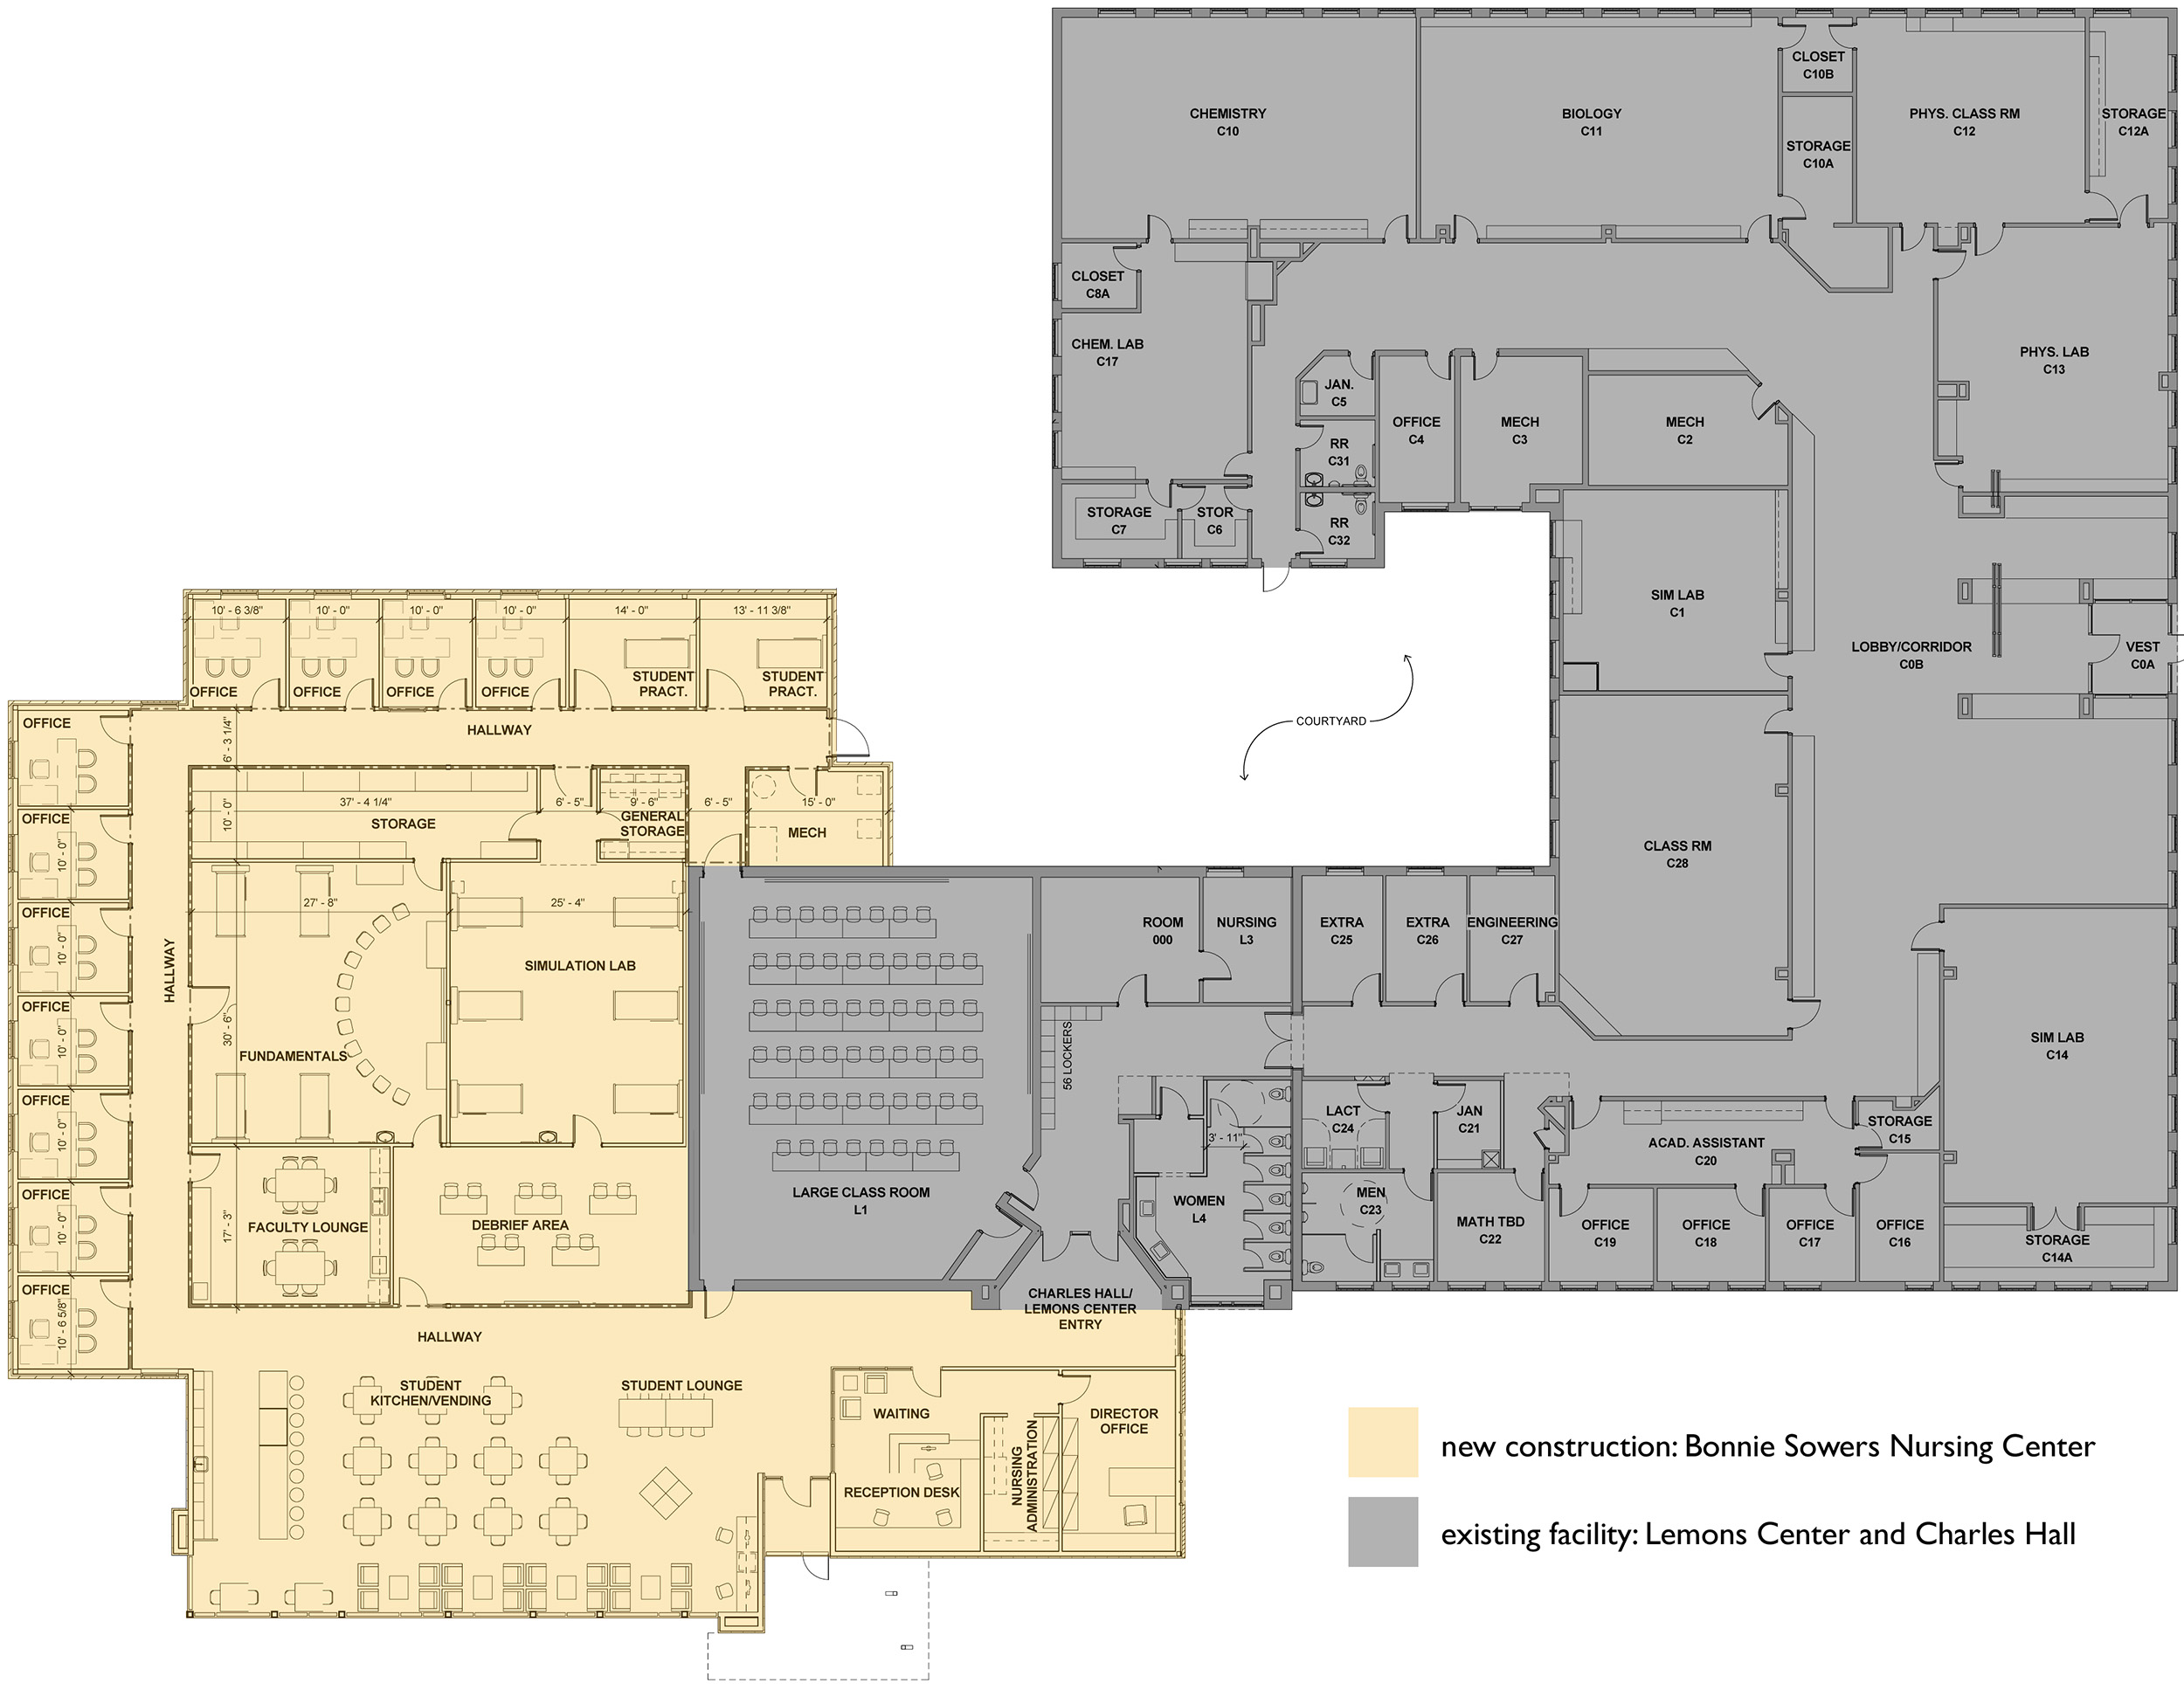 Bonnie Sowers Nursing Center floor plan